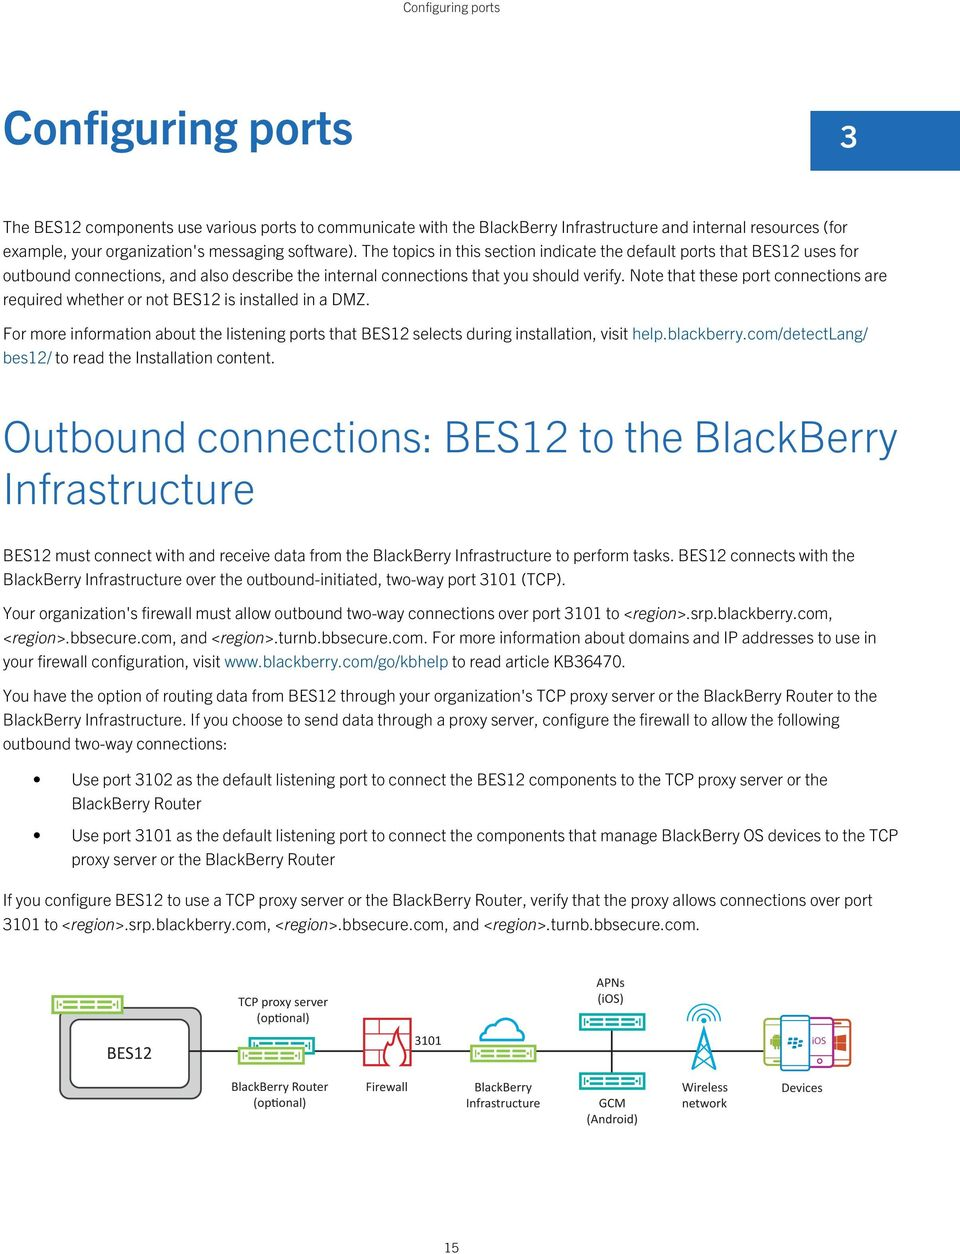 Note that these port connections are required whether or not BES12 is installed in a DMZ. For more information about the listening ports that BES12 selects during installation, visit help.blackberry.